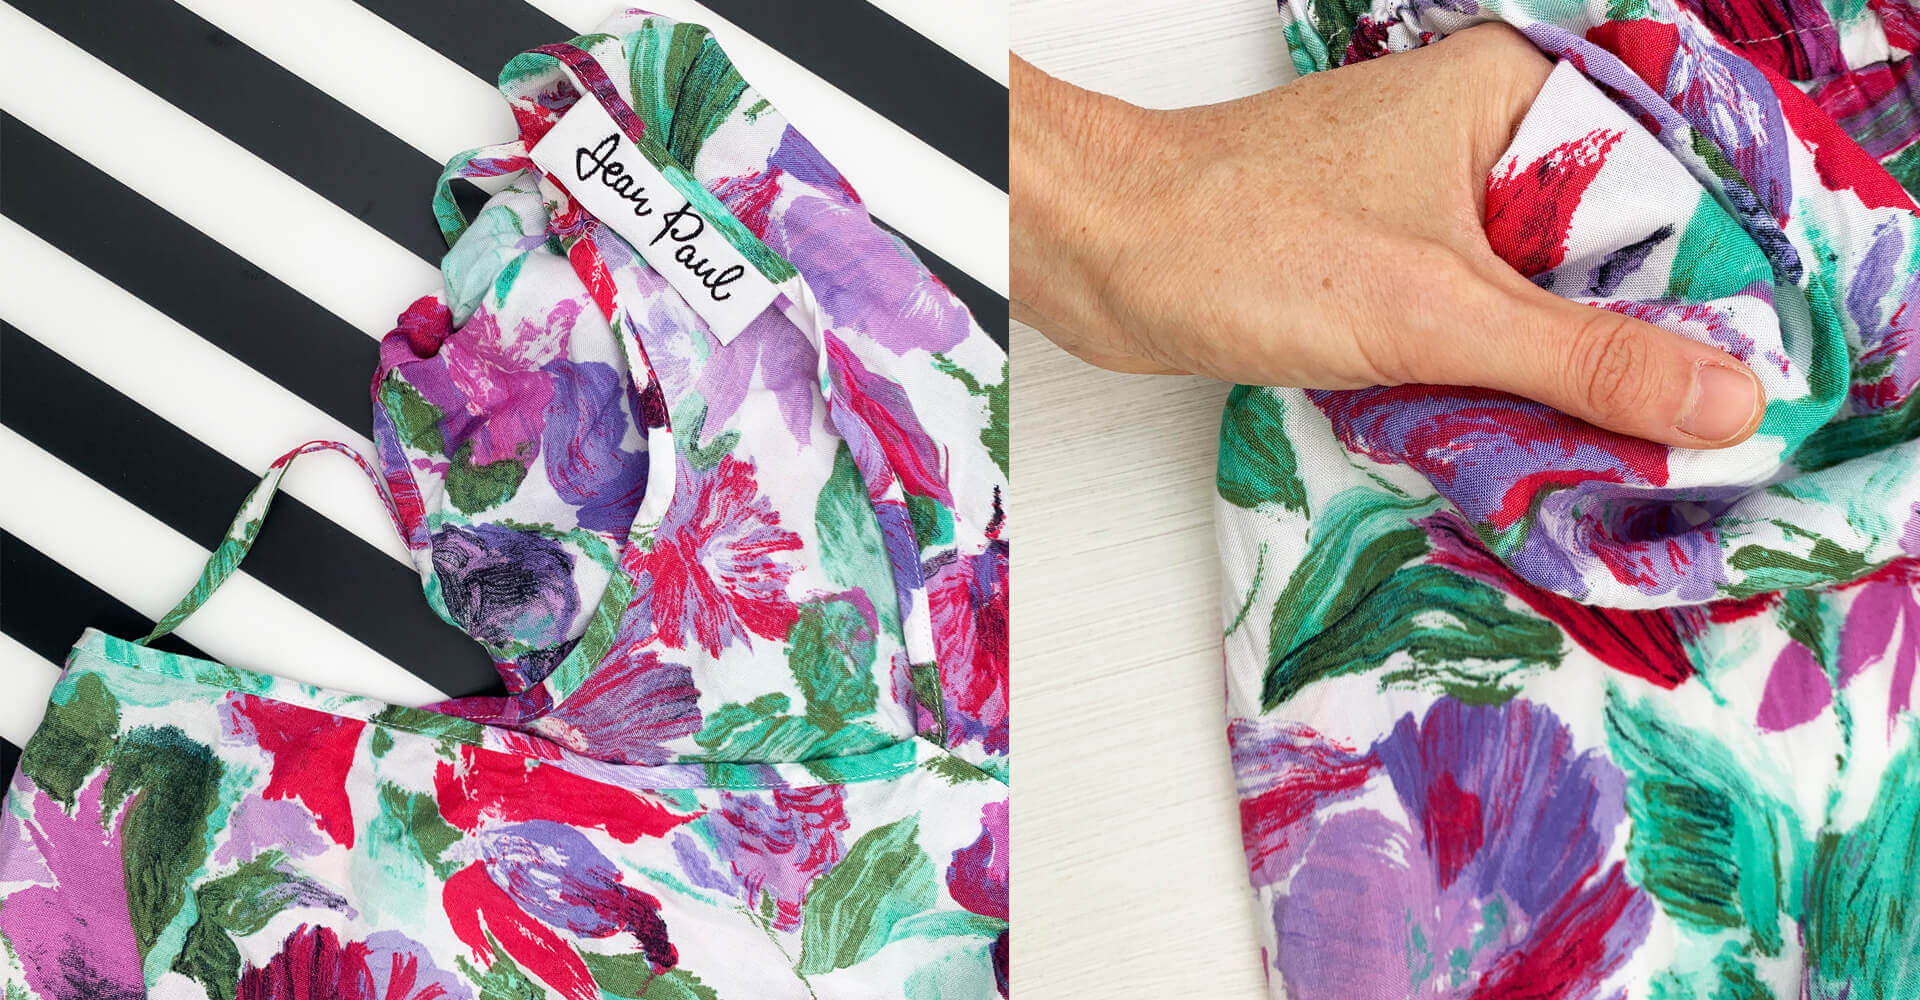 A close up of some vintage floral dress fabric, seen on the left hand side of the image against a black a white boldly striped background, and on the right hand side of the image being held by a white woman's hand to show the scale of the print.